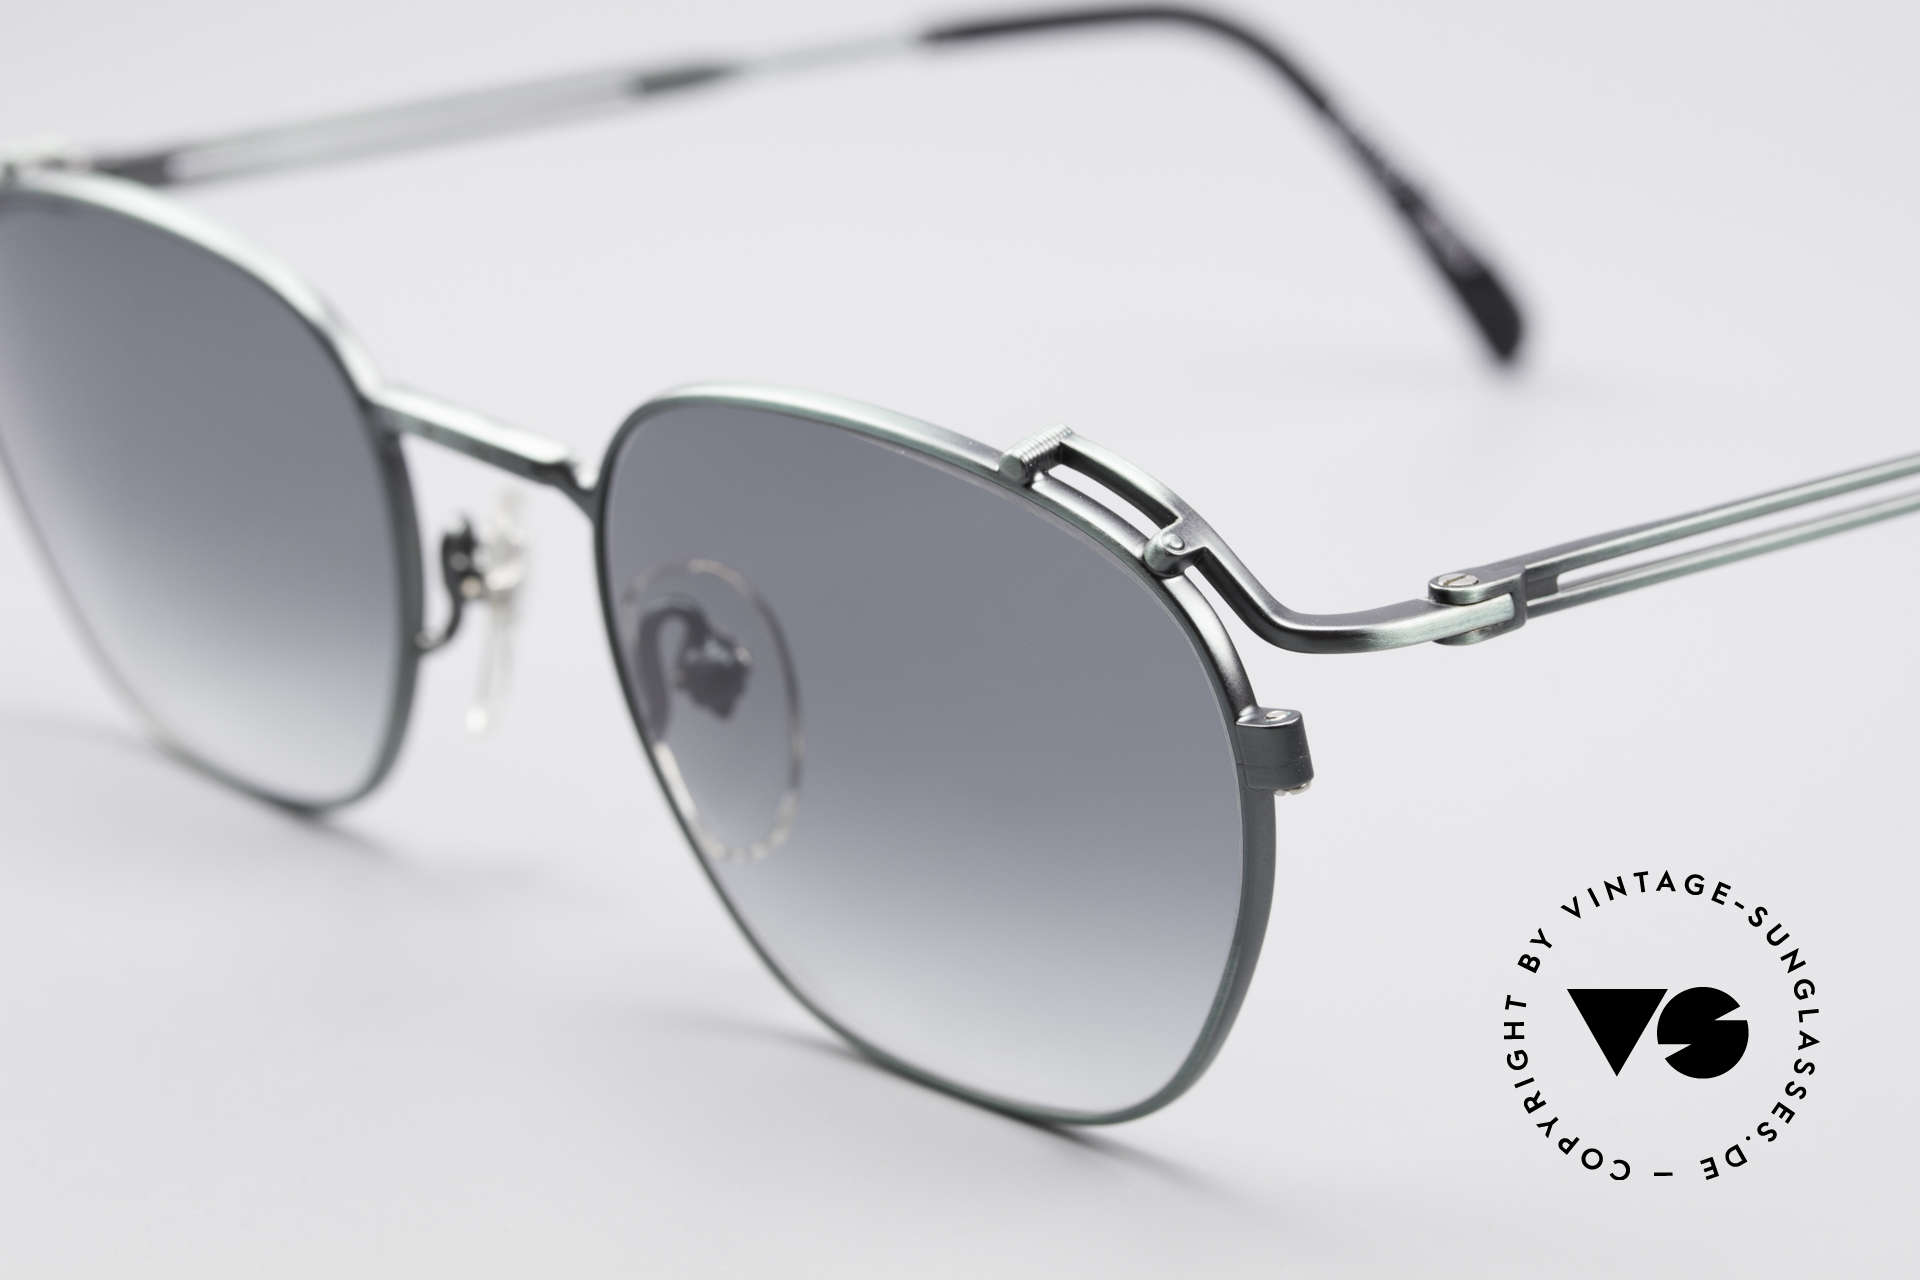 Jean Paul Gaultier 55-3173 90's Designer Sunglasses, top-notch 1990's craftsmanship, made in Japan, Made for Men and Women